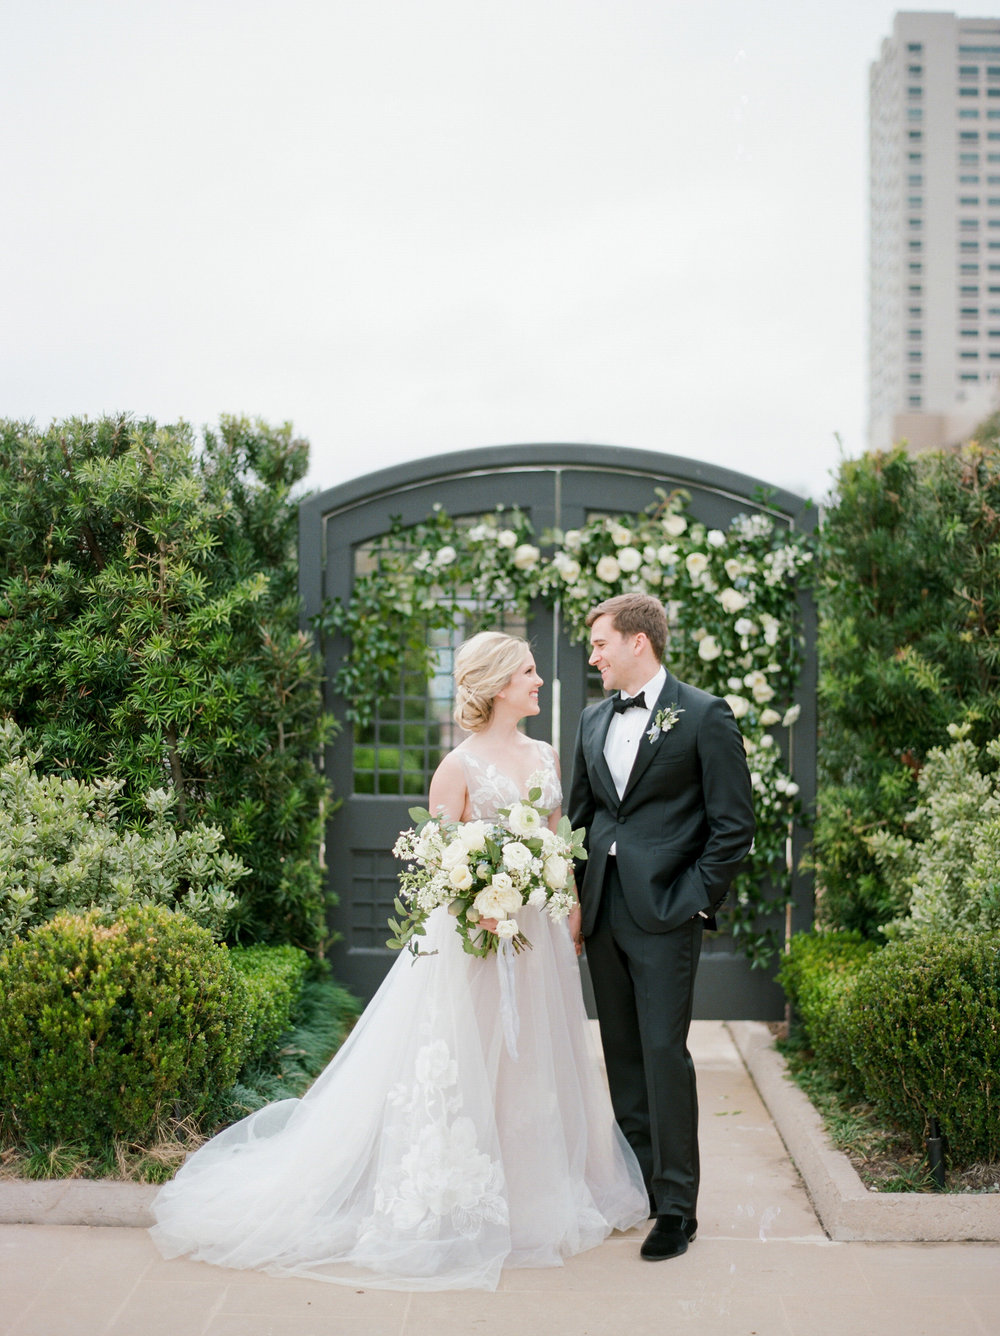 McGovern-Centennial-Gardens-Houston-Texas-Wedding-Venue-Josh-Dana-Fernandez-Photography-Film-Destination-Fine-Art-Luxury-Top-Best-Austin-Dallas-Magnolia-Rouge-Jennifer-Laura-Design-3.jpg